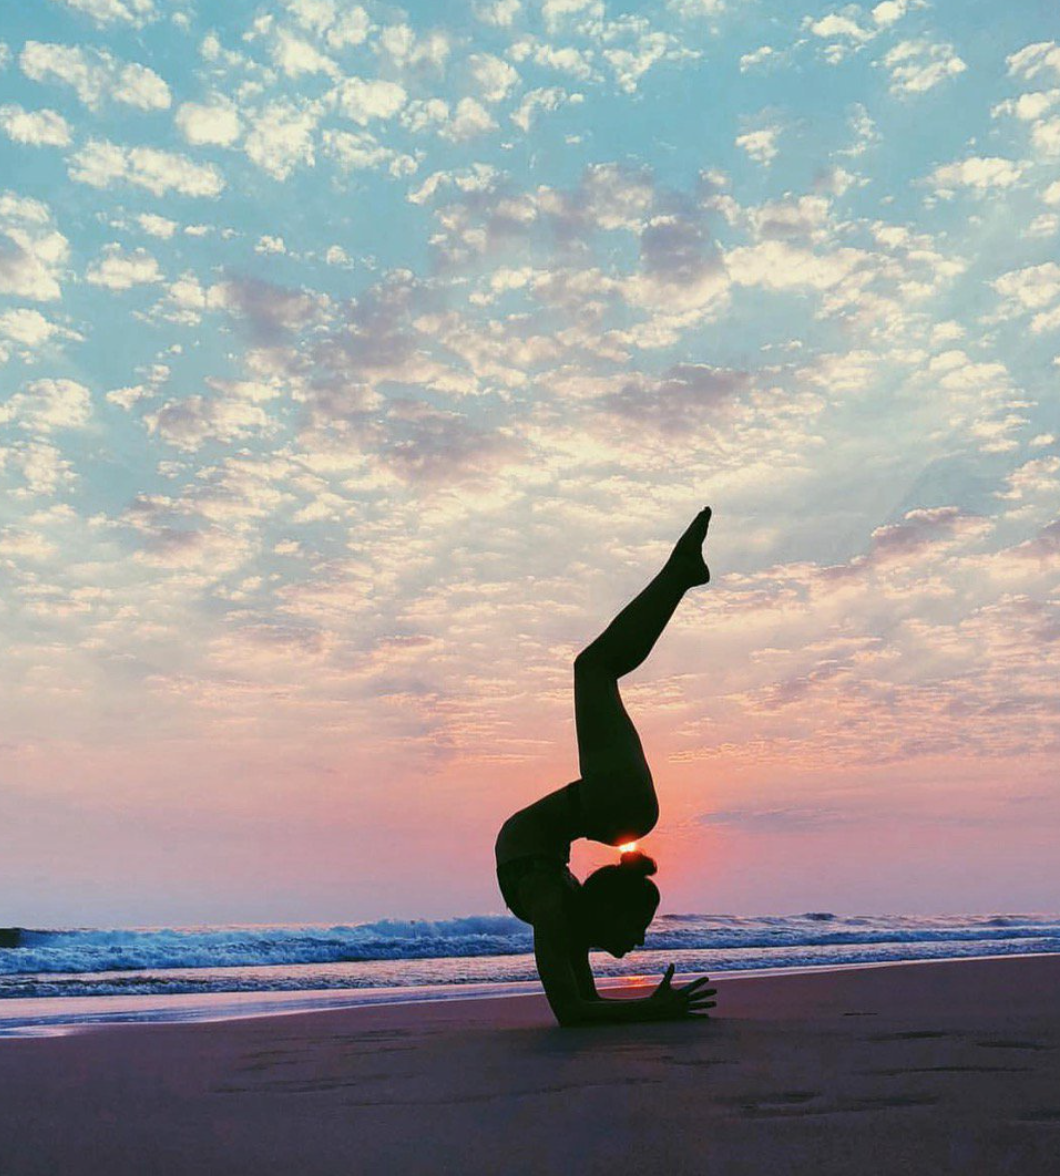 """""""Sky above. Earth below. Peace within."""" - Unknown  ❤️ #Inspired by @aubrymarie & #aloyoga"""